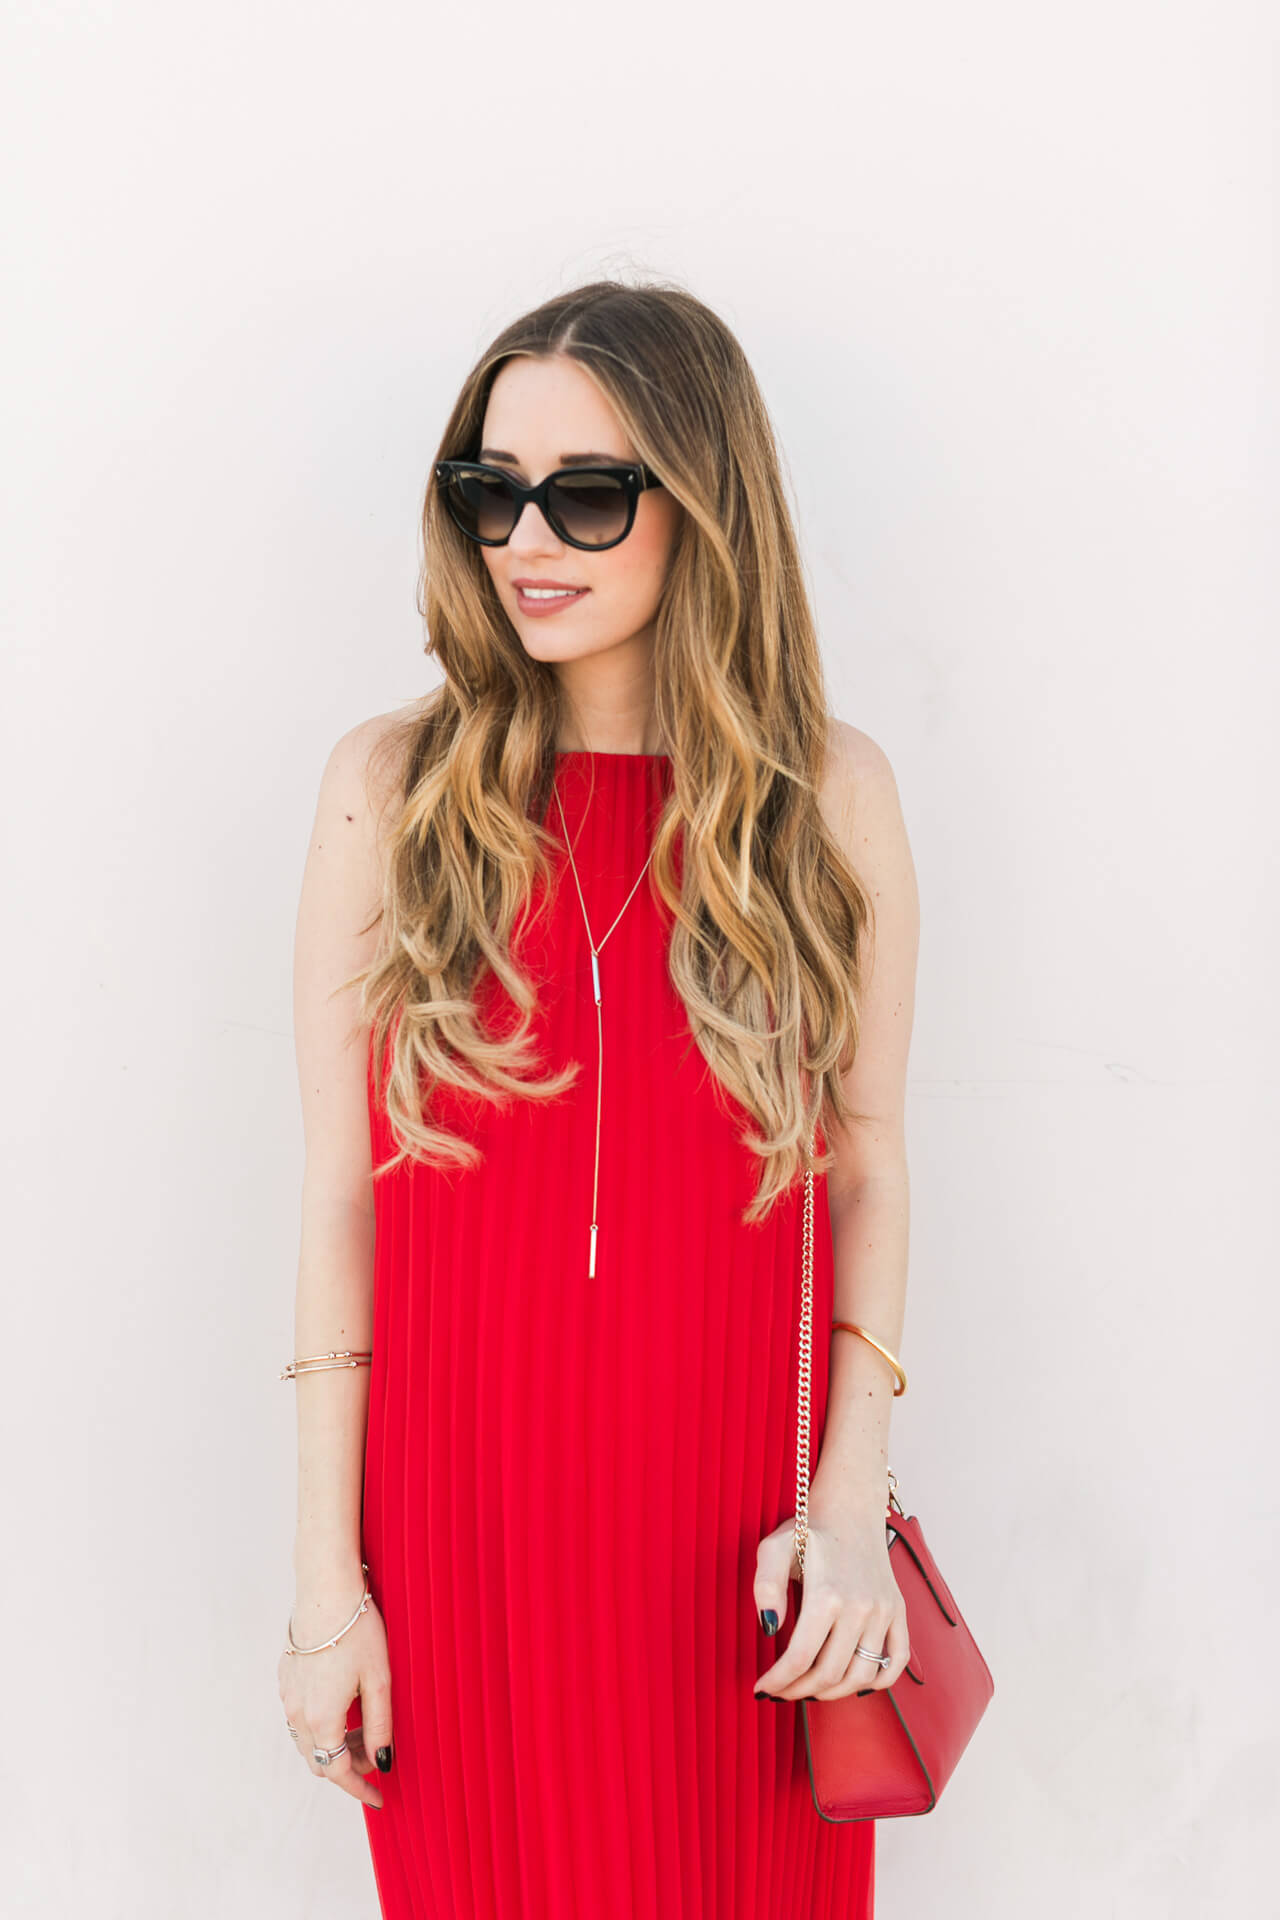 feminine outfit inspiration with a red dress